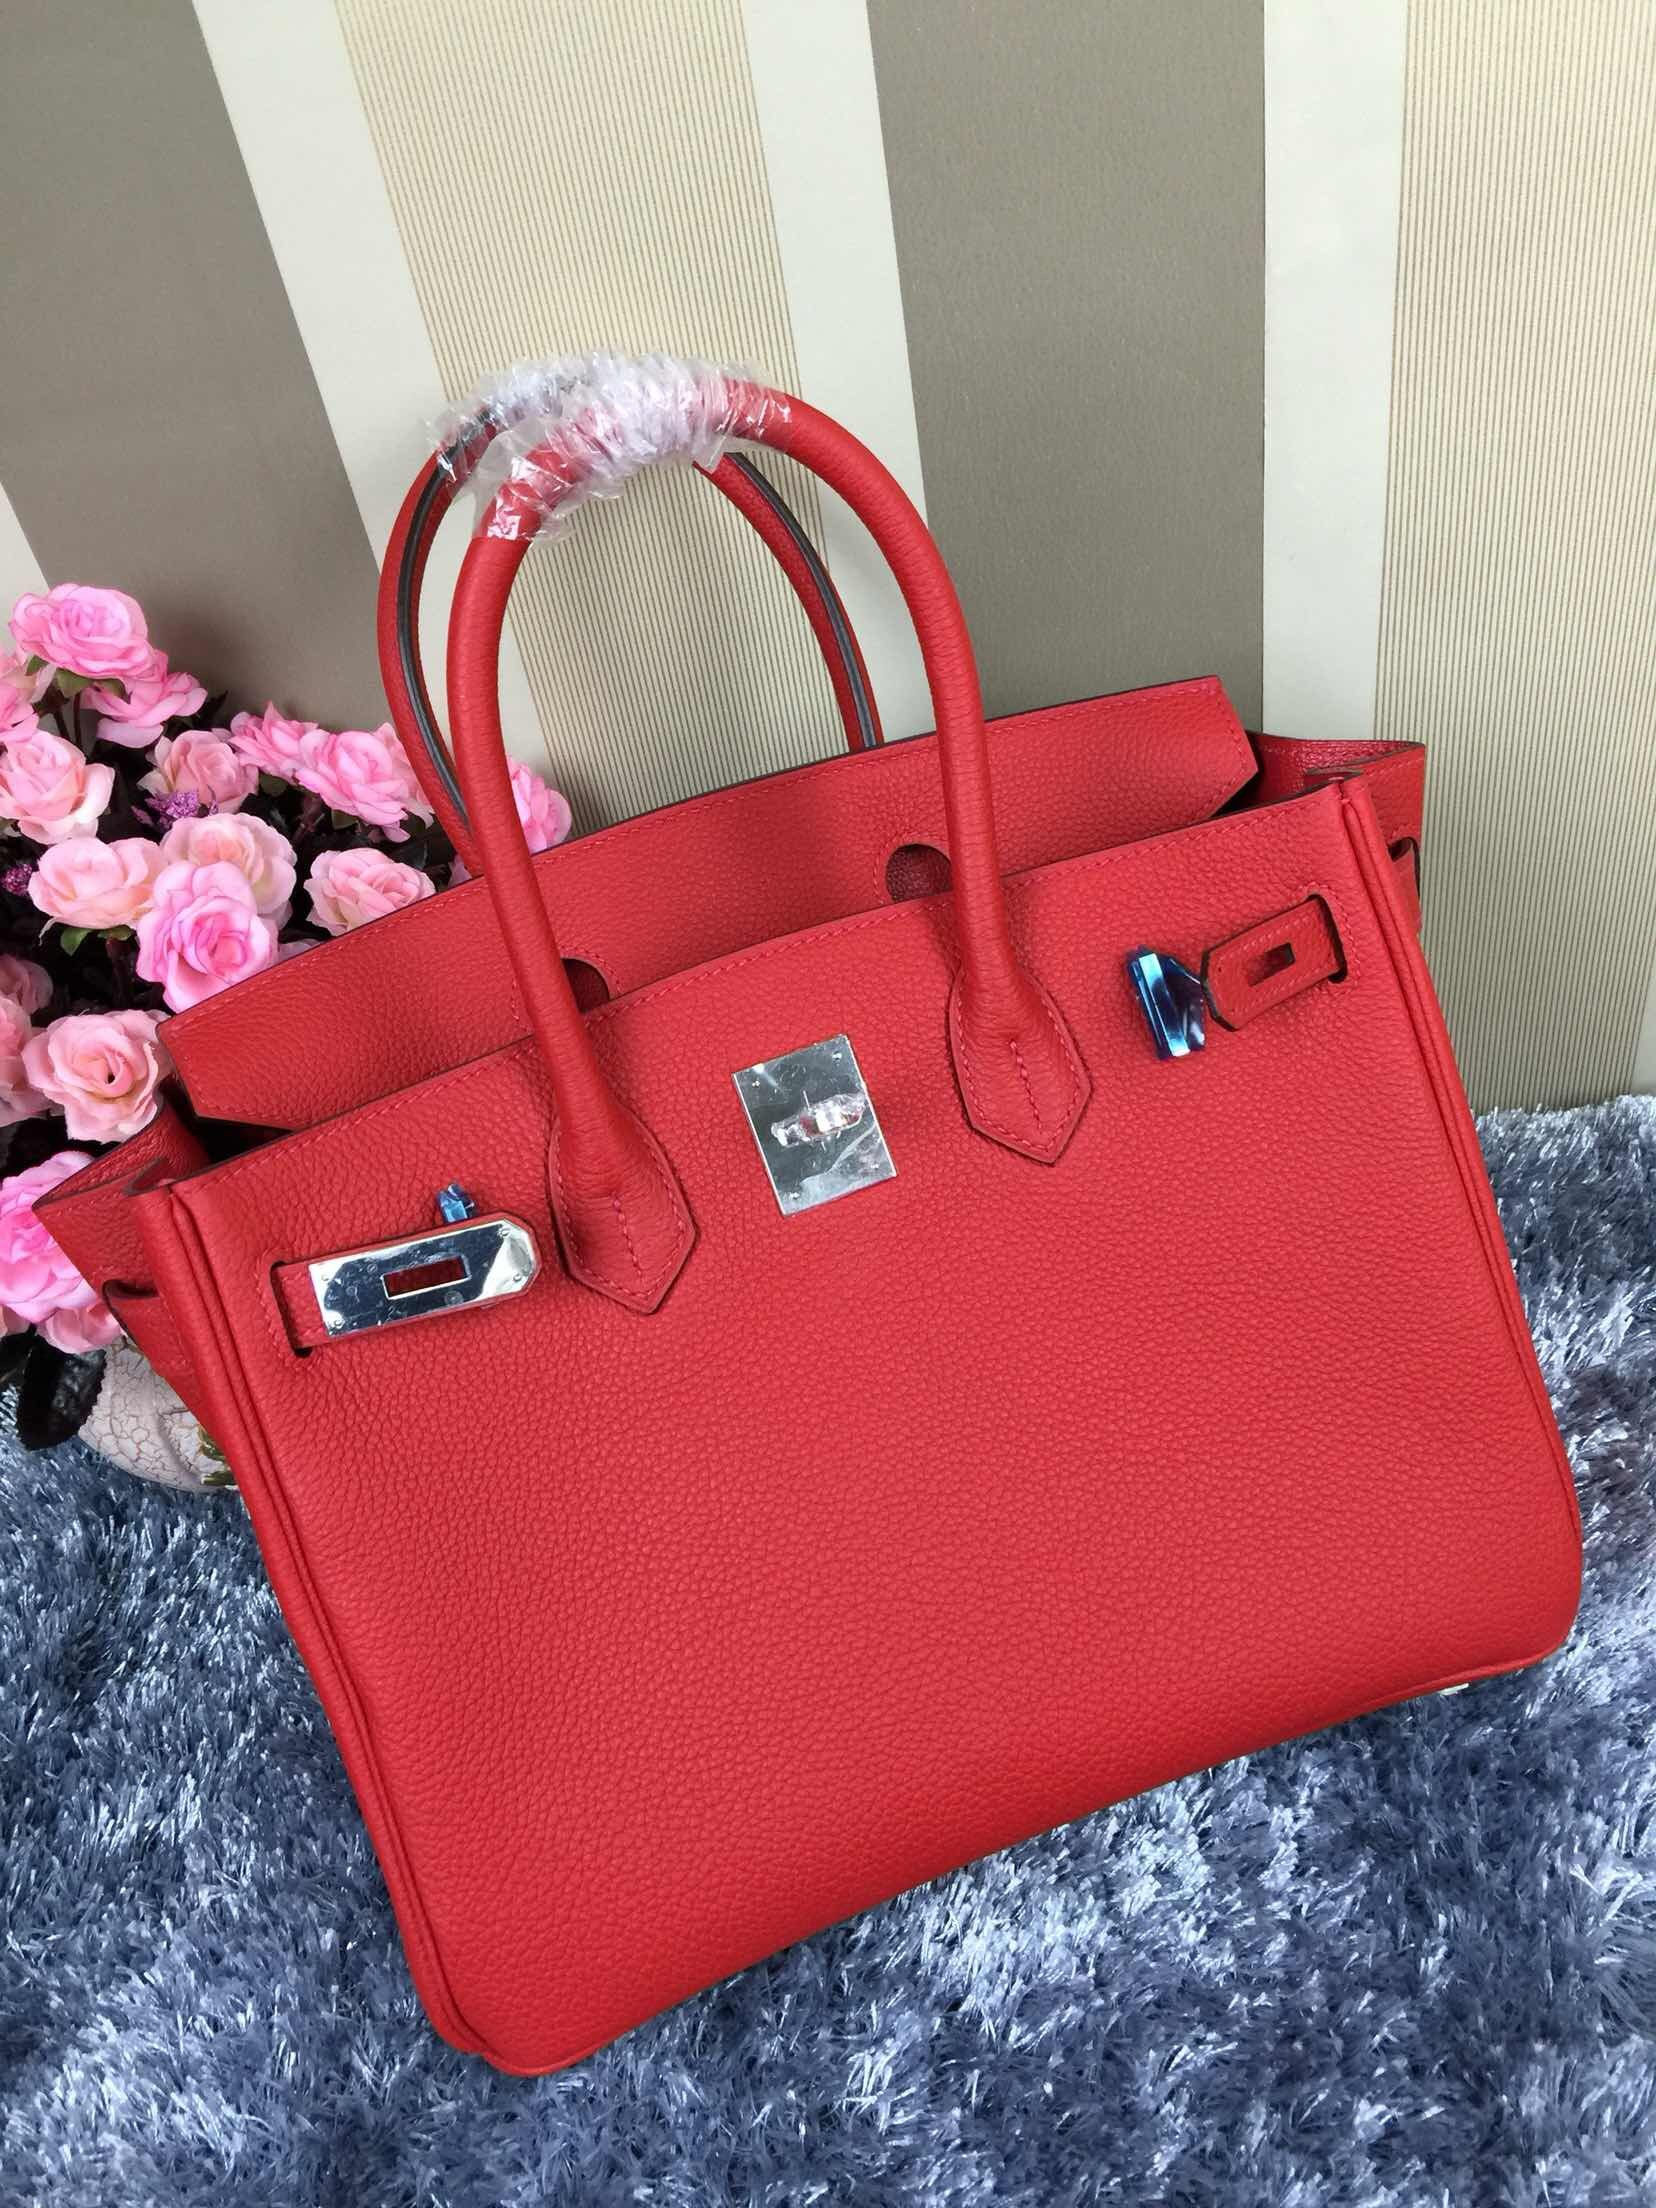 05bf8b5c65164 Hermes Birkin 30 Original Togo Leather Red (Silver hardware ...